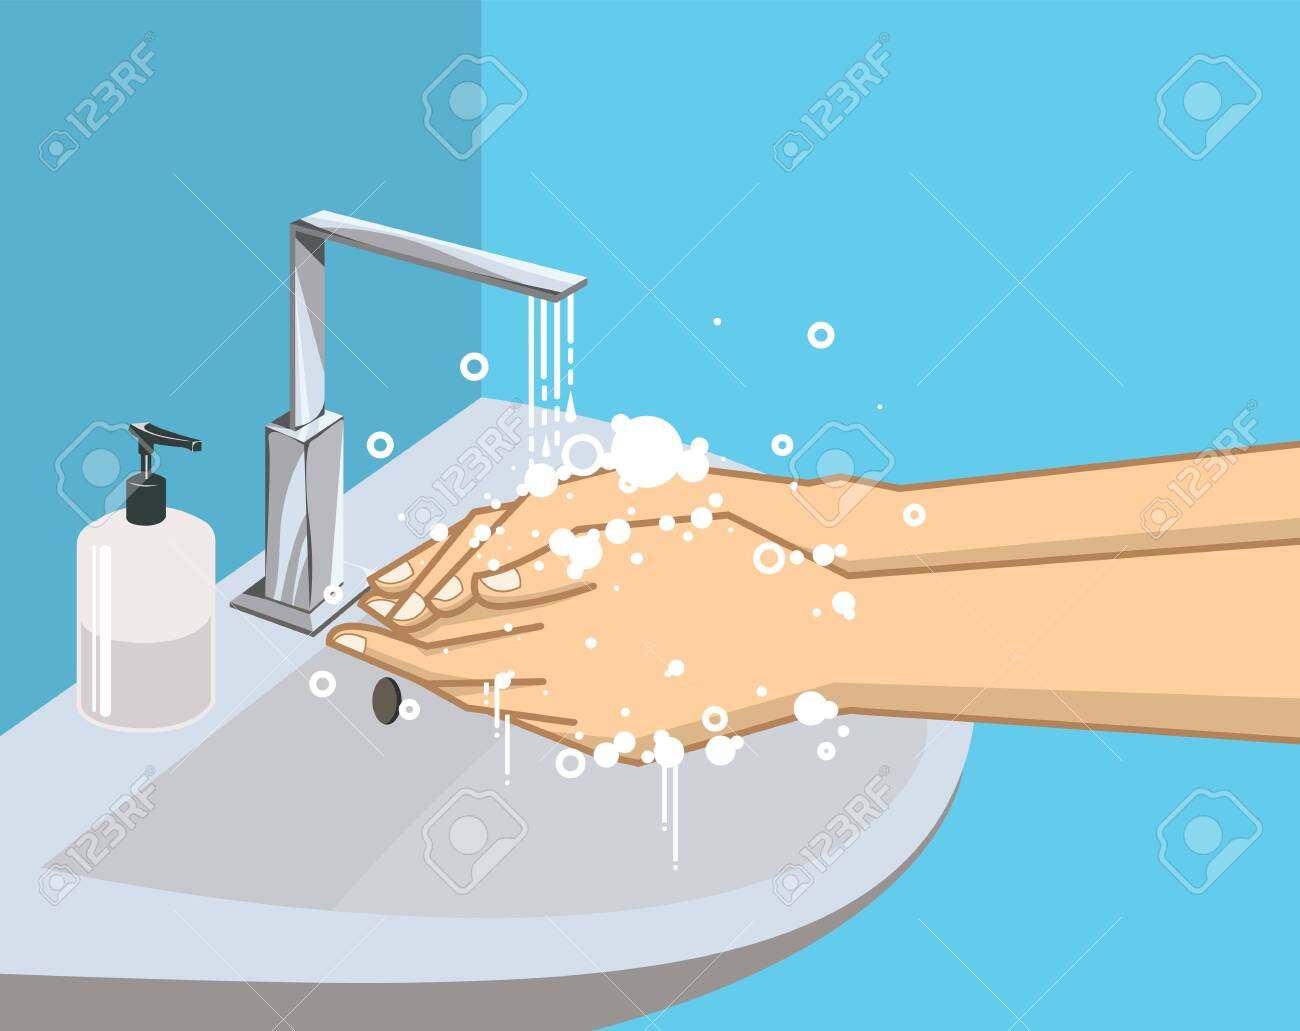 Washing hands with soap under the faucet with water, Hygiene and promotion of cleanliness and health, health care. vector illustration. - 141887316